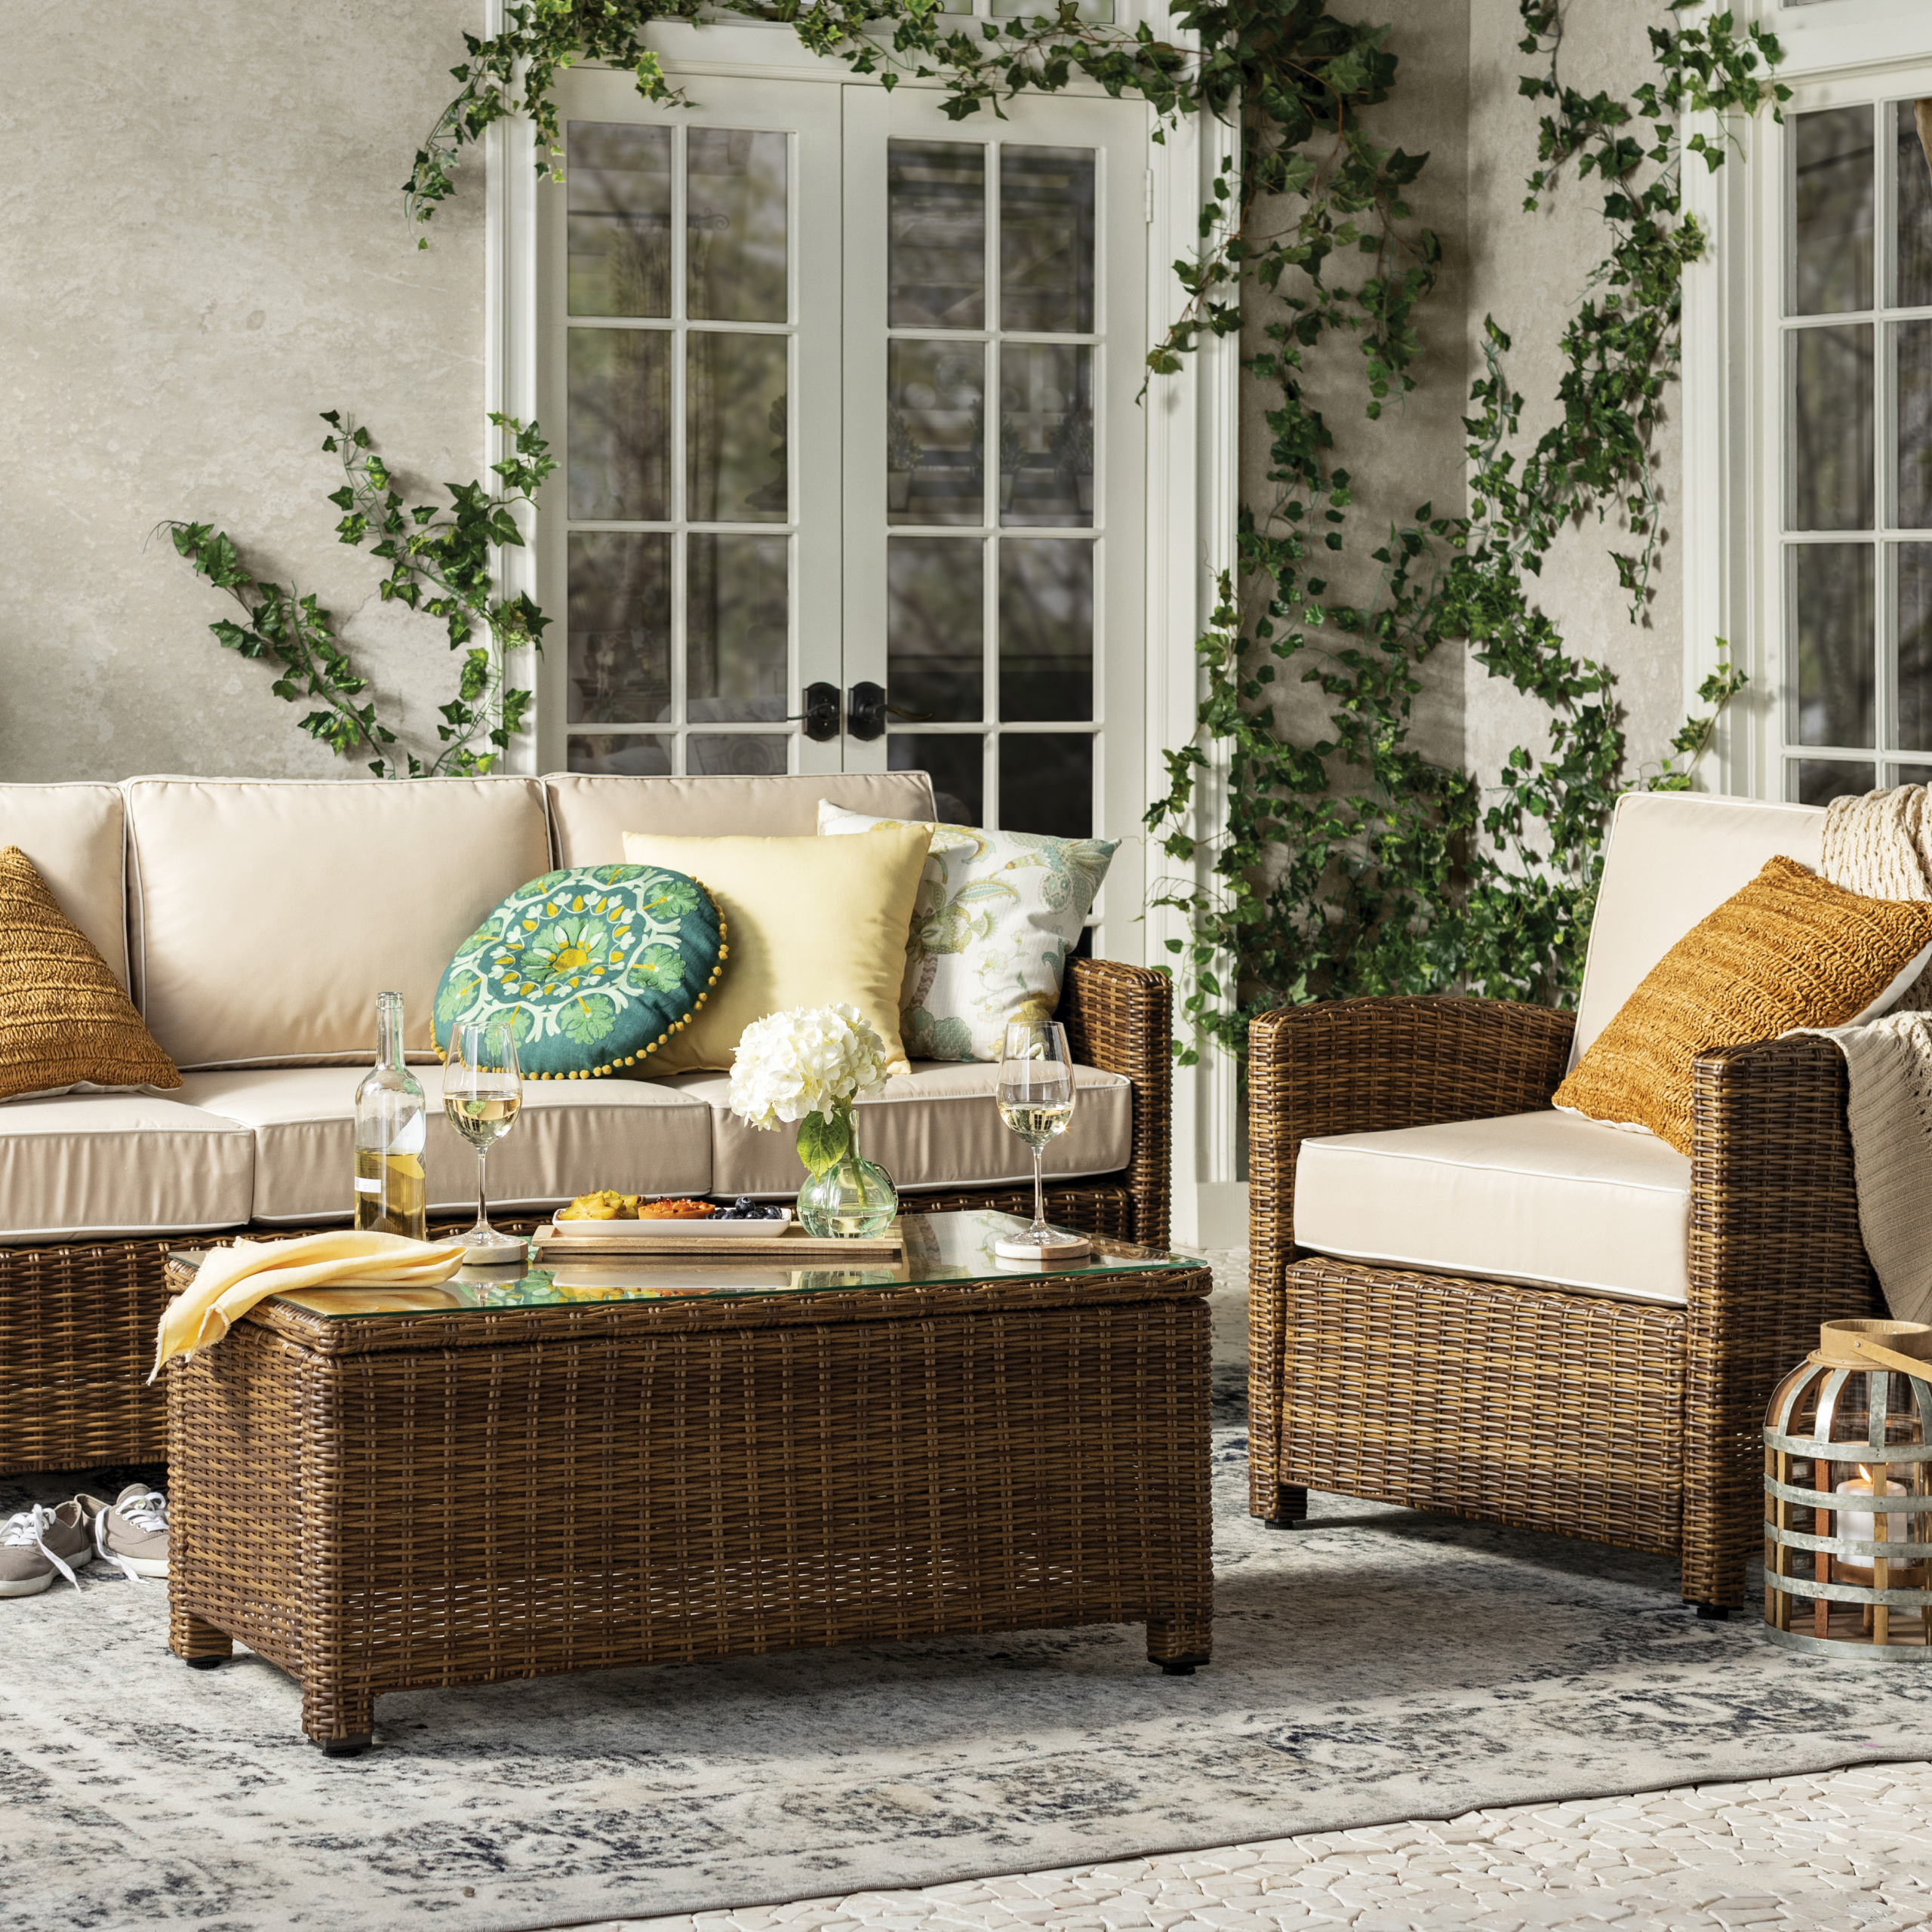 Current Farmhouse & Rustic Outdoor Sofas & Seating (View 23 of 25)